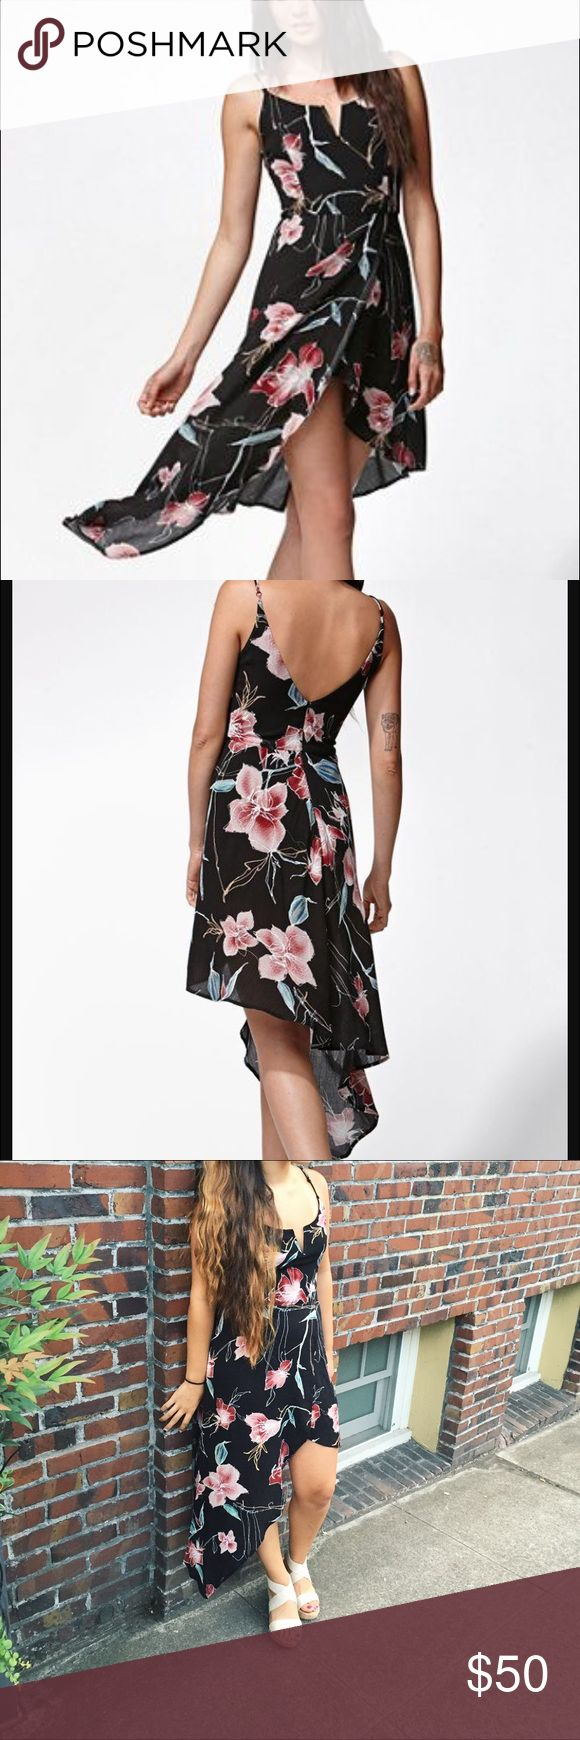 Kendall and Kylie floral sundress Out of stock Kendall and Kylie dress. Excellent condition, only worn a few times Kendall & Kylie Dresses